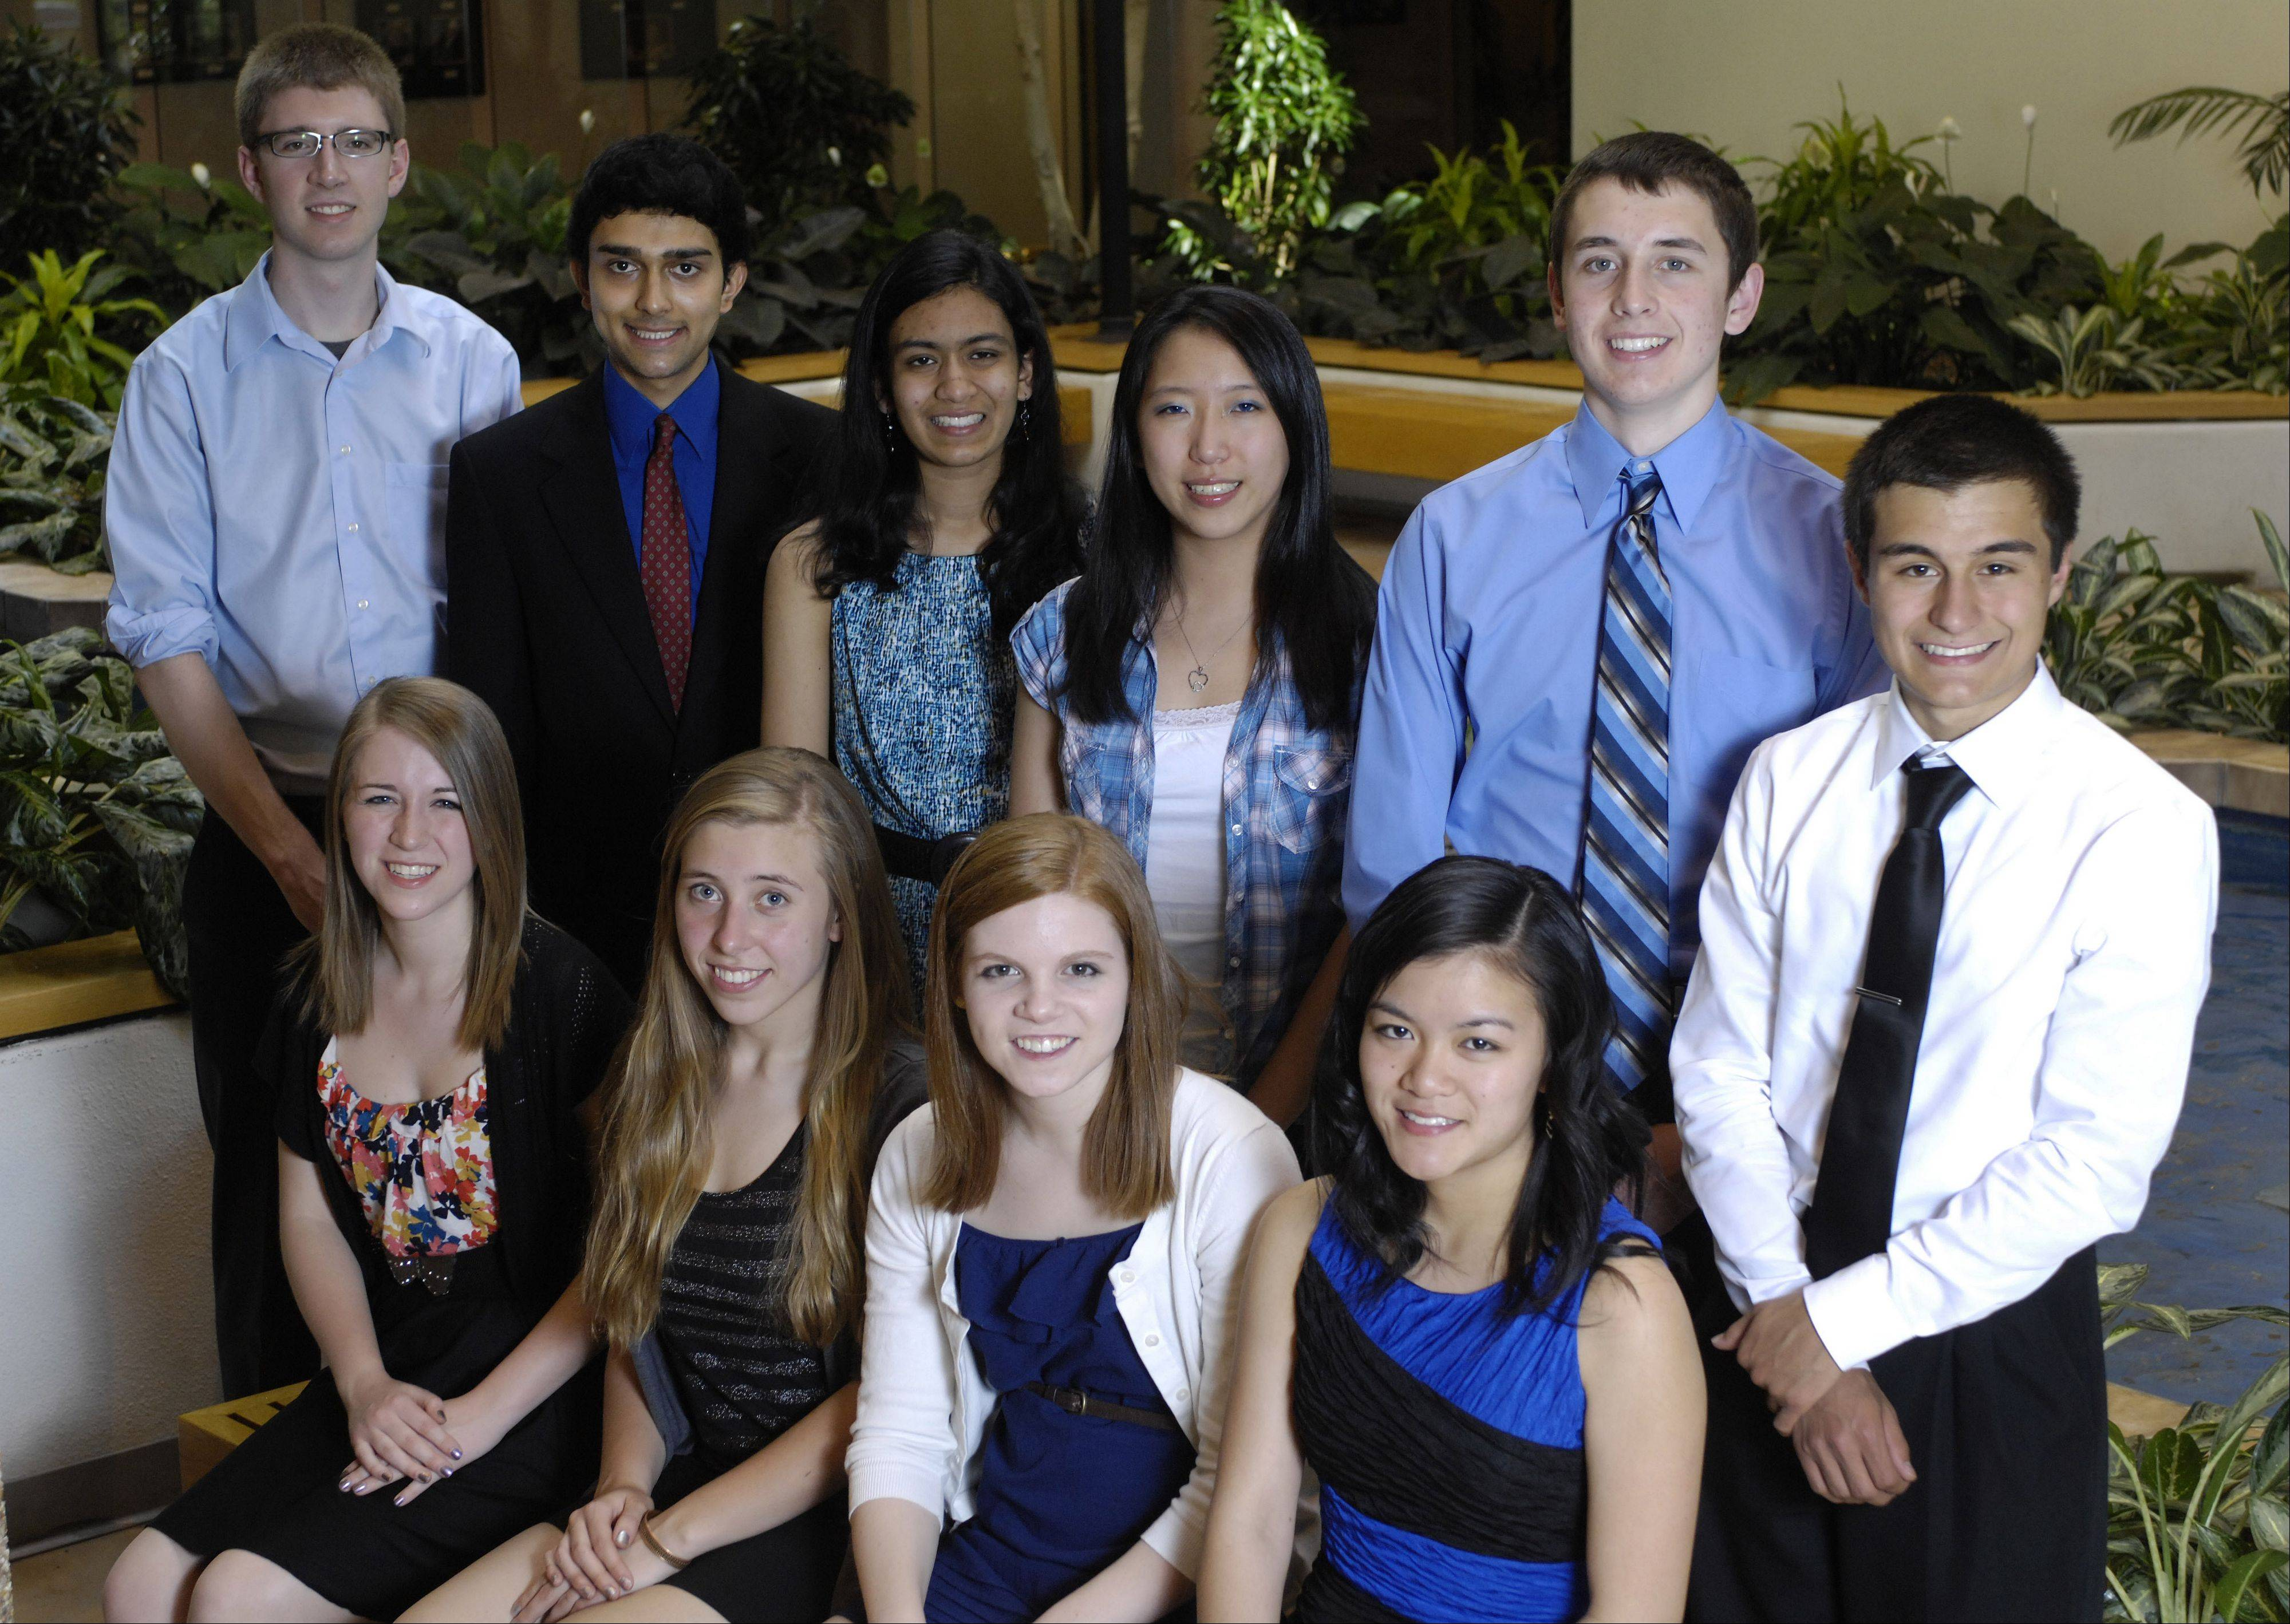 The 2011-12 Northwest Suburban Academic Team, inside the Daily Herald's Arlington Heights office. Front row, from left: Emily Liquin, Palatine High School; Marianne Palczewski, Bartlett High School; Madeline Conway, Prospect High School; Connie Liou, James B. Conant High School. Back row, from left: Alex Linzmeier, Wheeling High School; Anand Patel, James B. Conant High School; Avni Bavishi, Hoffman Estates High School; Mengran Liu, Hoffman Estates High School; Joe Sessions, John Hersey High School and Antonio Spina, Bartlett High School.